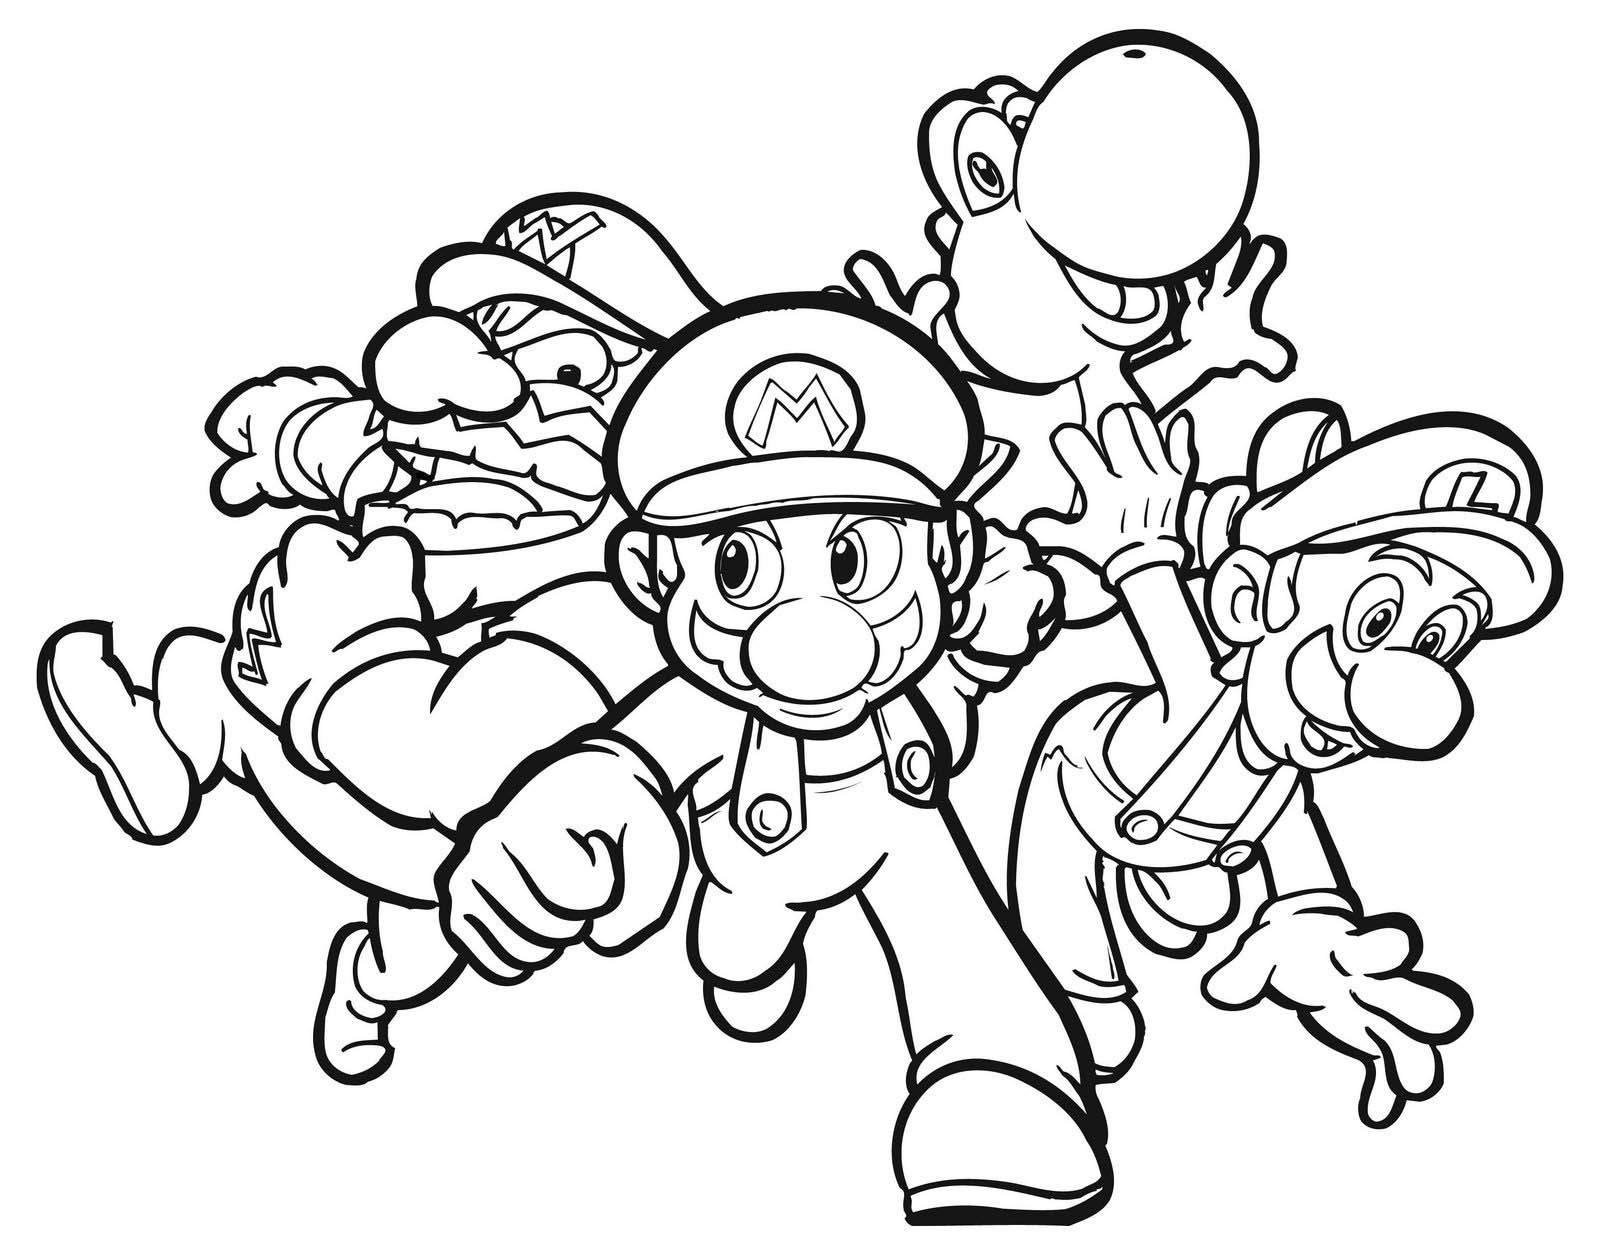 Coloringsco Coloring Pages For Boys Mario Bro